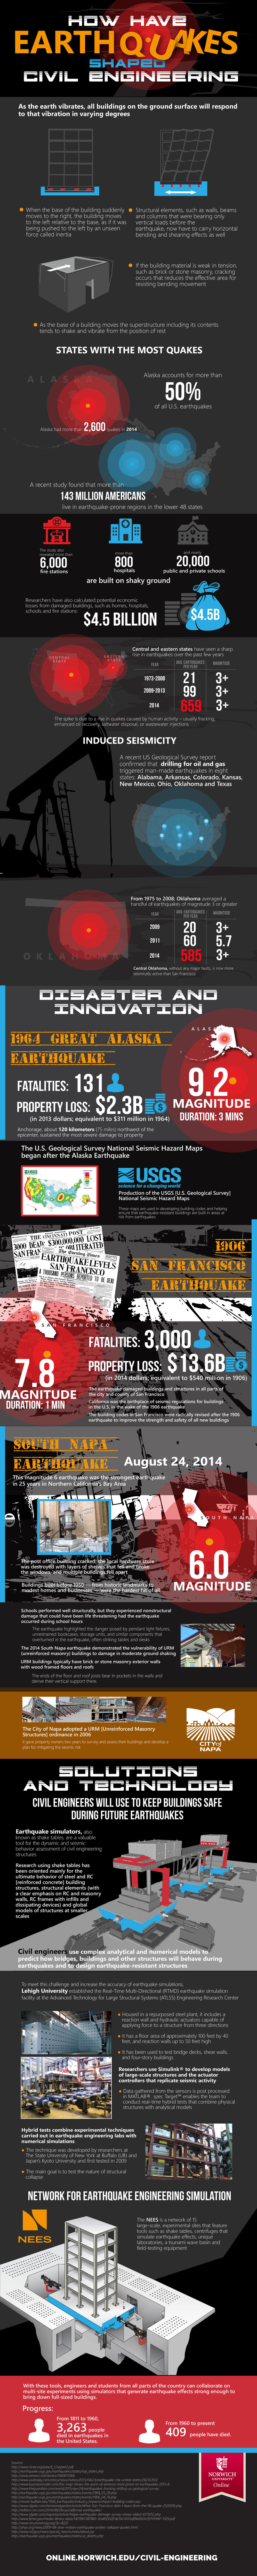 infographic on how earthquakes have shaped civil engineering